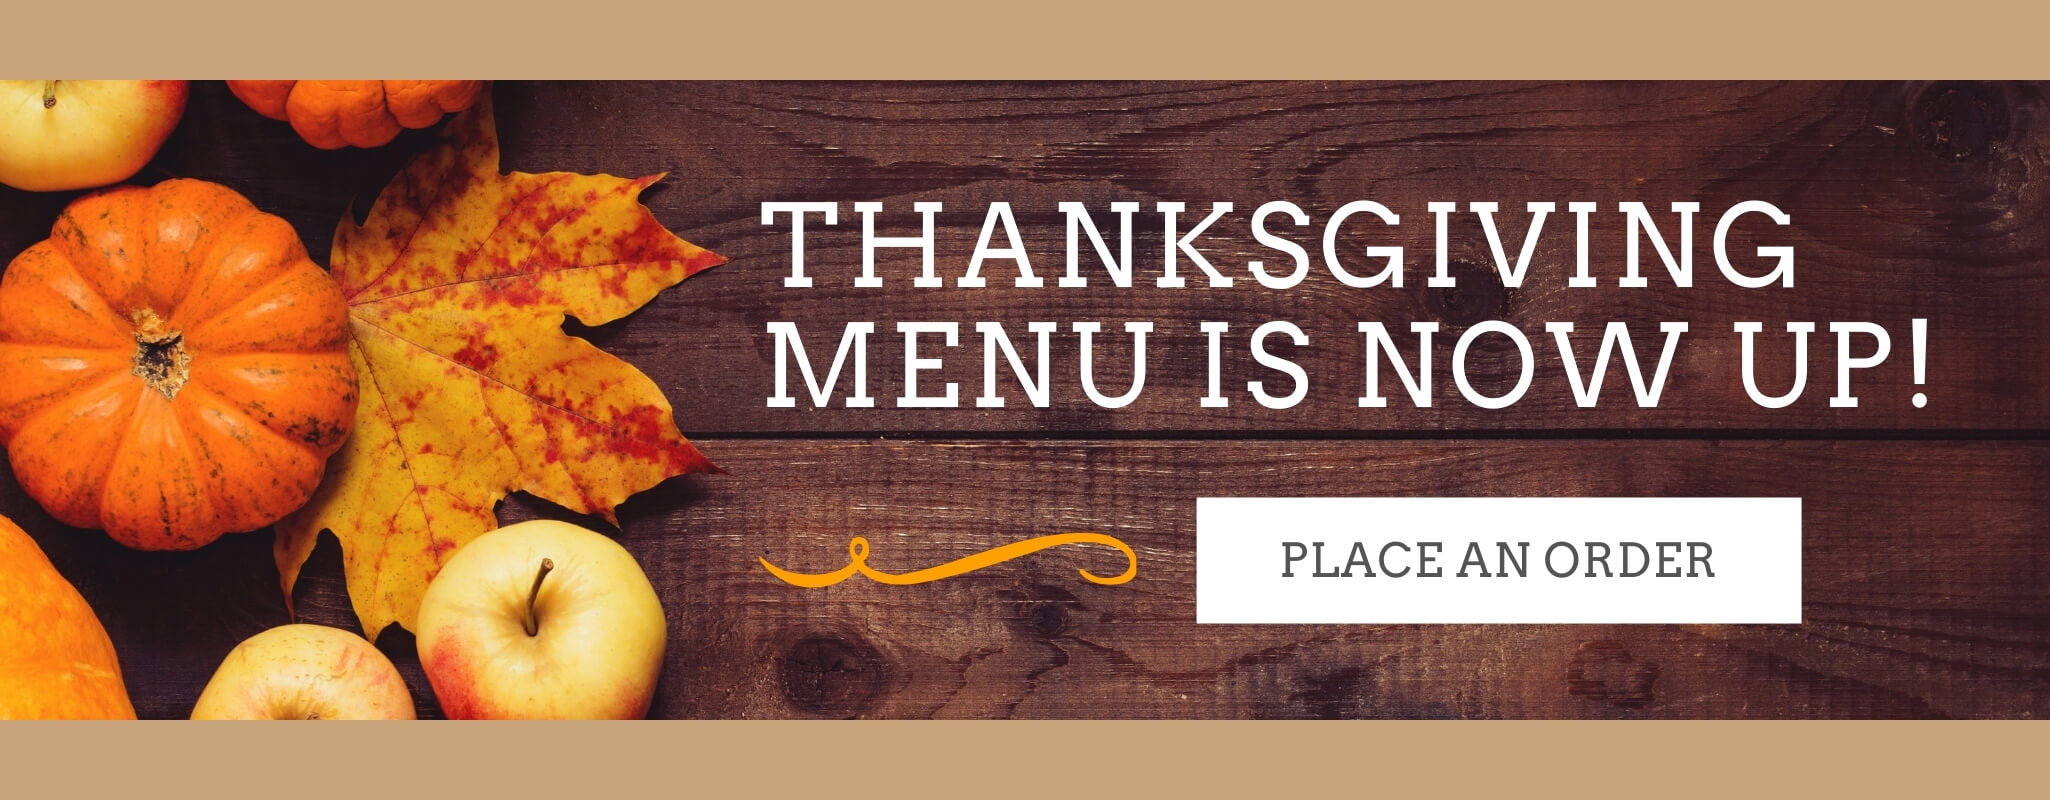 Thanksgiving Menu is Now Up!